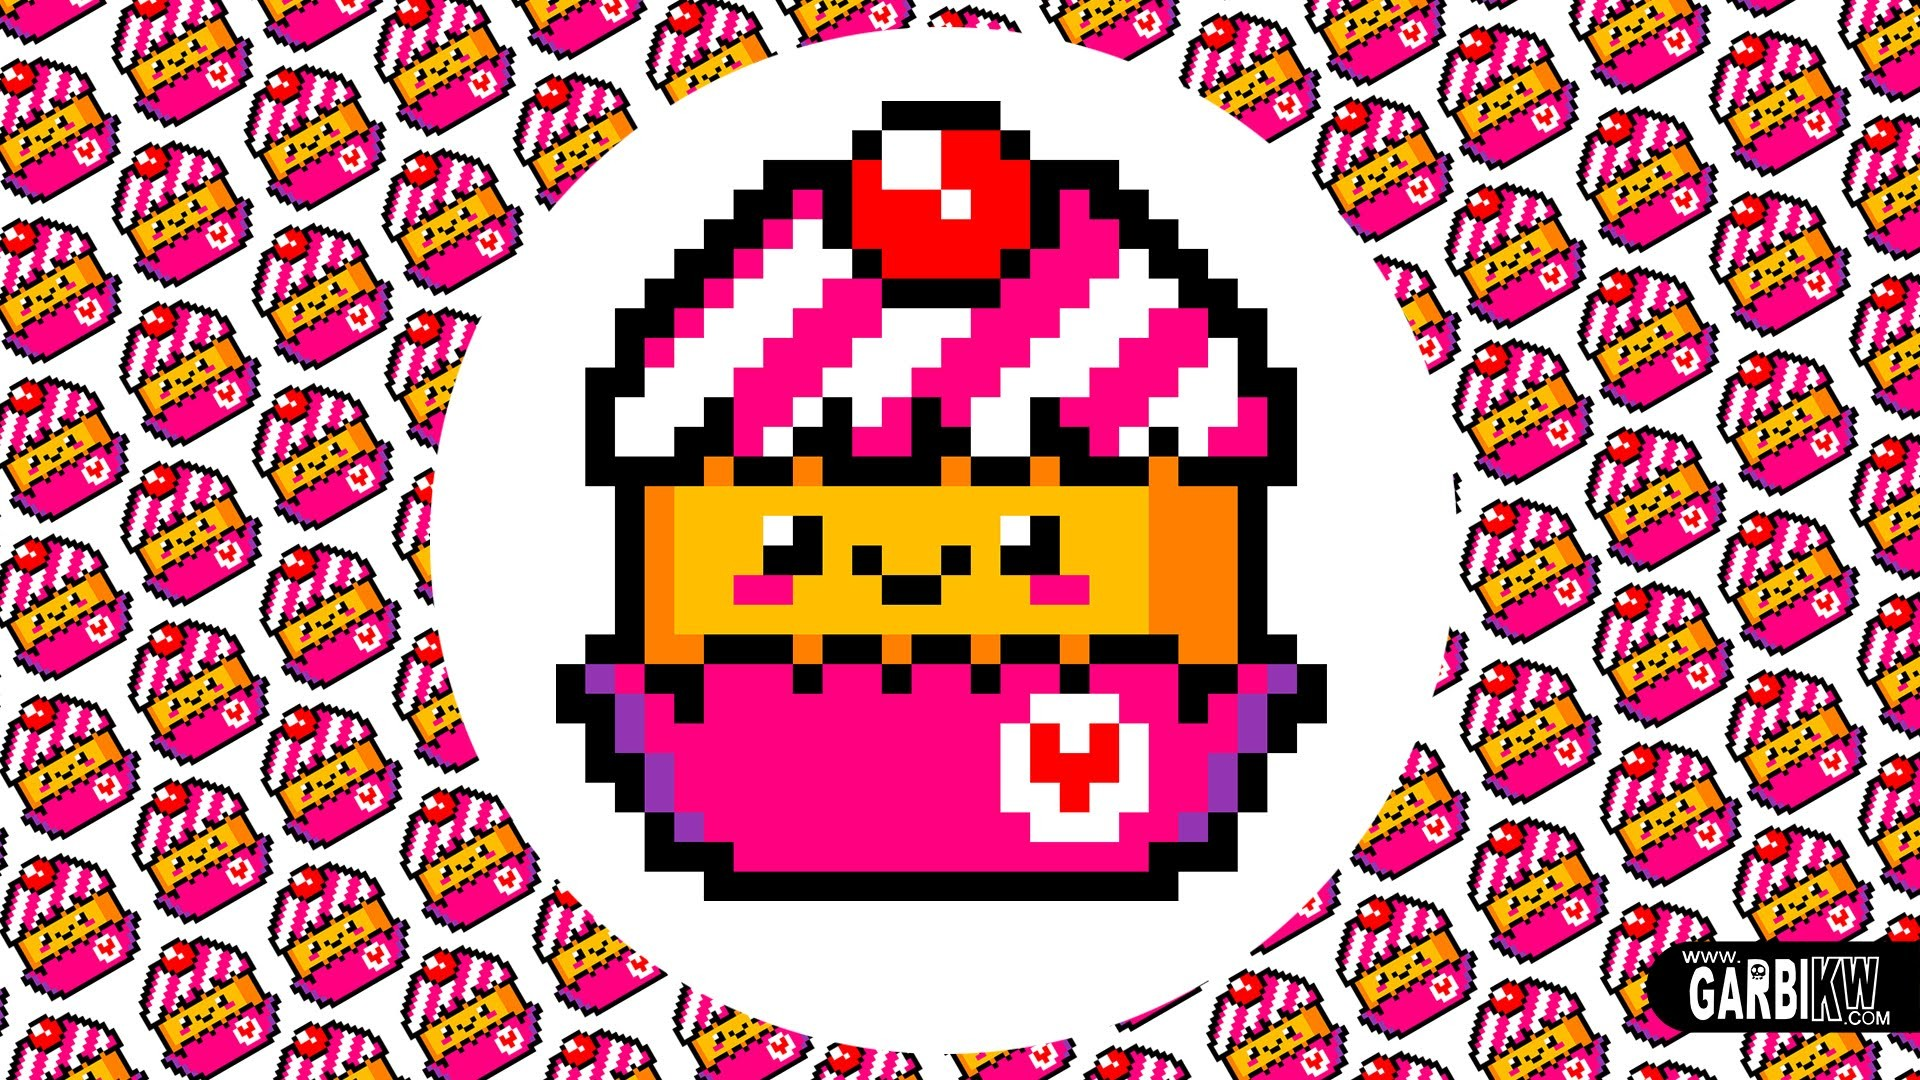 Res: 1920x1080, Kawaii Cupcake - Drawing Pixel Art by Garbi KW - Cute Characters Design -  YouTube